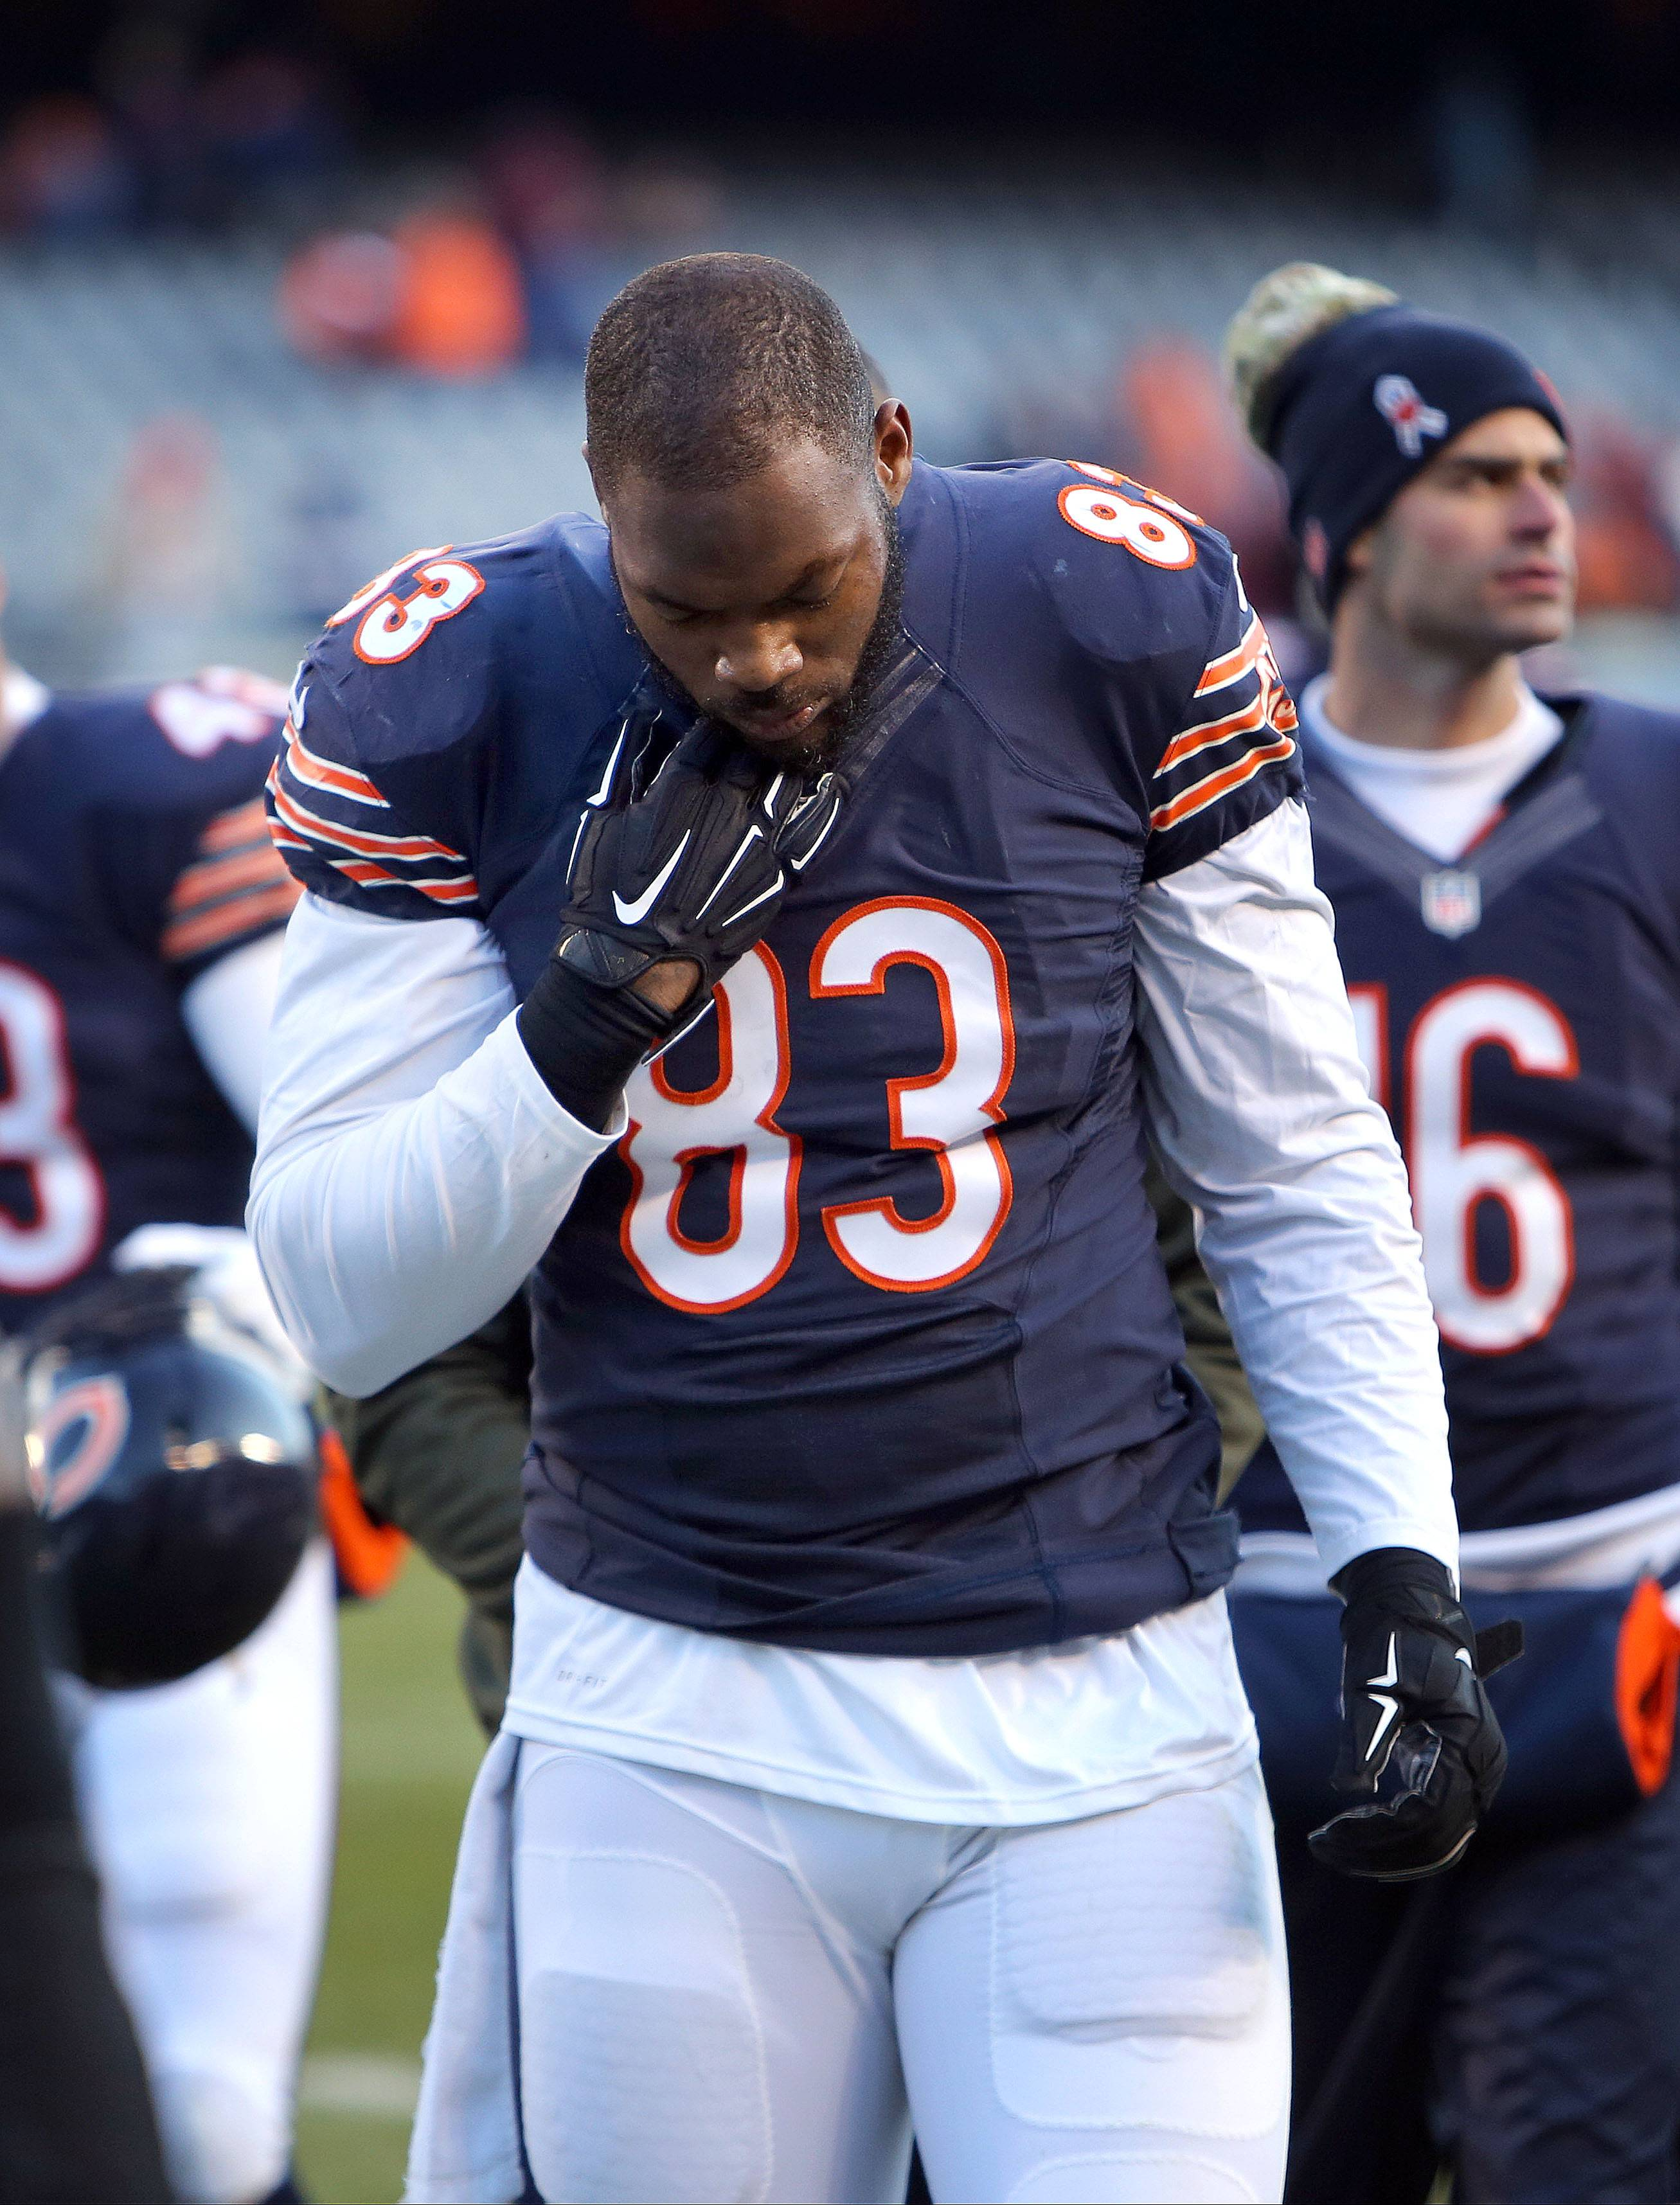 Bears tight end Martellus Bennett hangs his head after their 17-15 loss to the Broncos Sunday at Soldier Field.